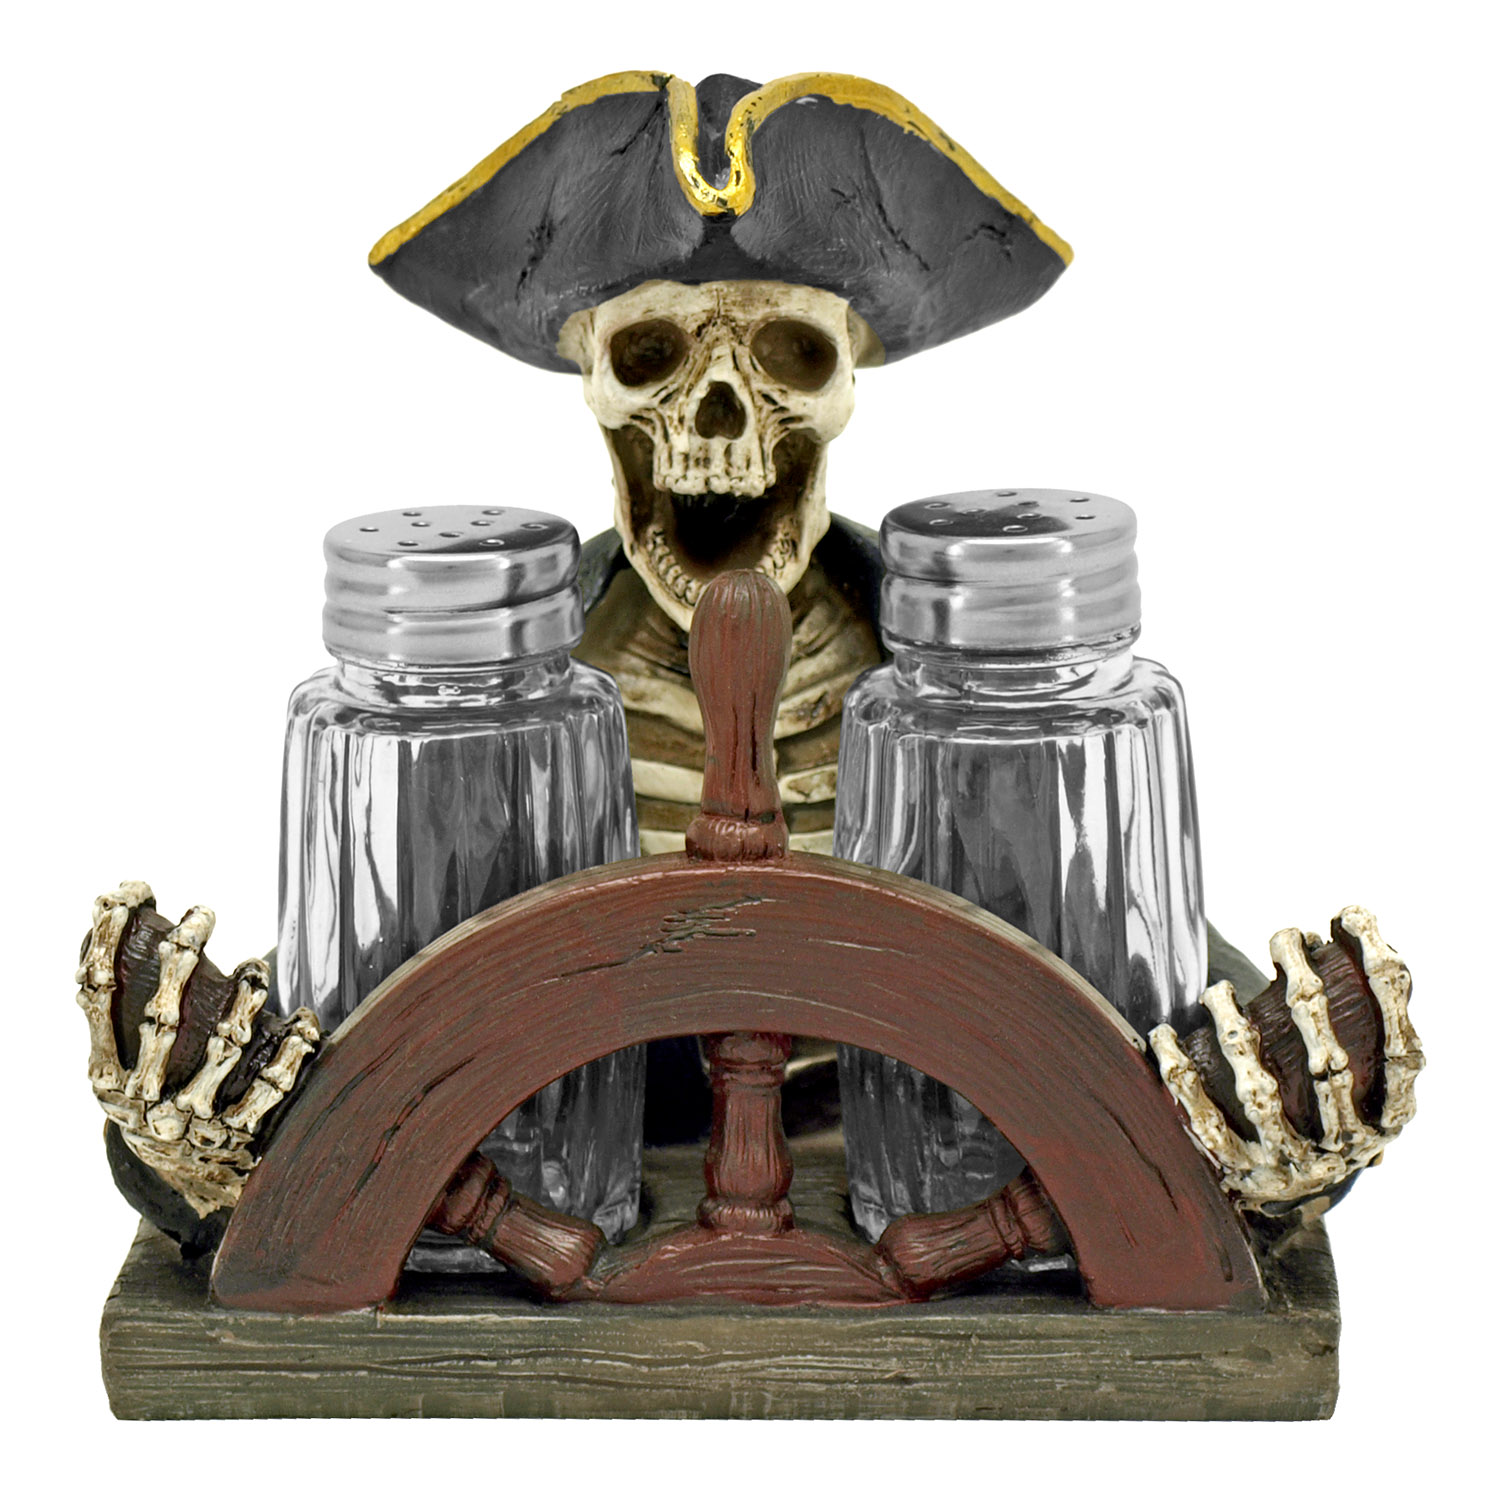 Spice Trader Raider - Pirate Salt and Pepper Shaker Holder